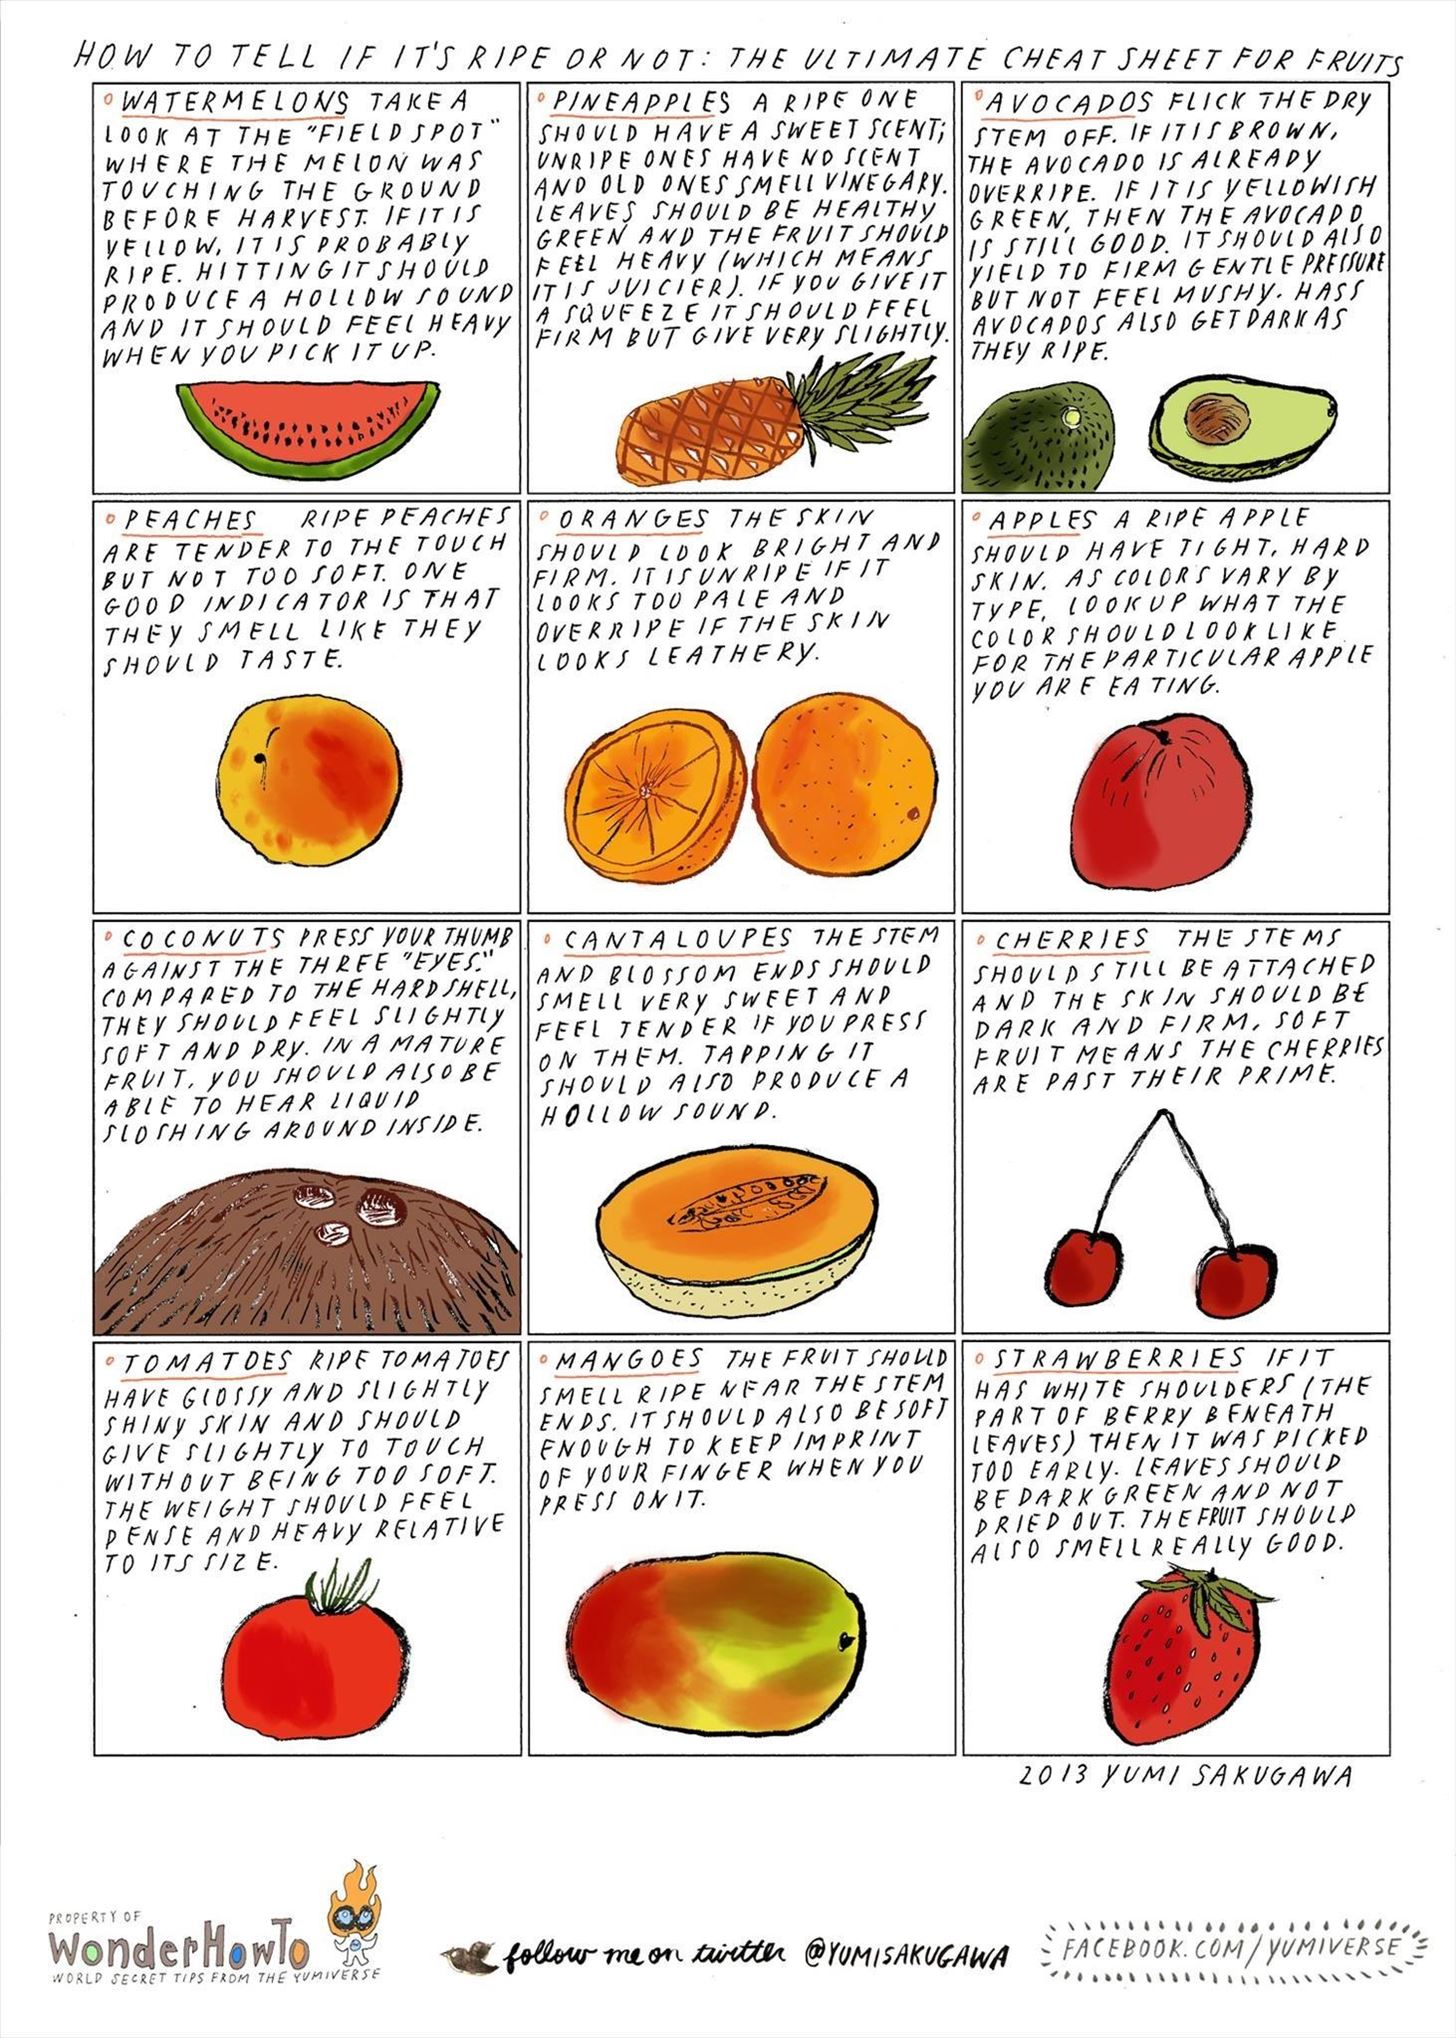 How to Tell If It's Ripe or Not: The Ultimate Cheat Sheet for Tricky Fruits